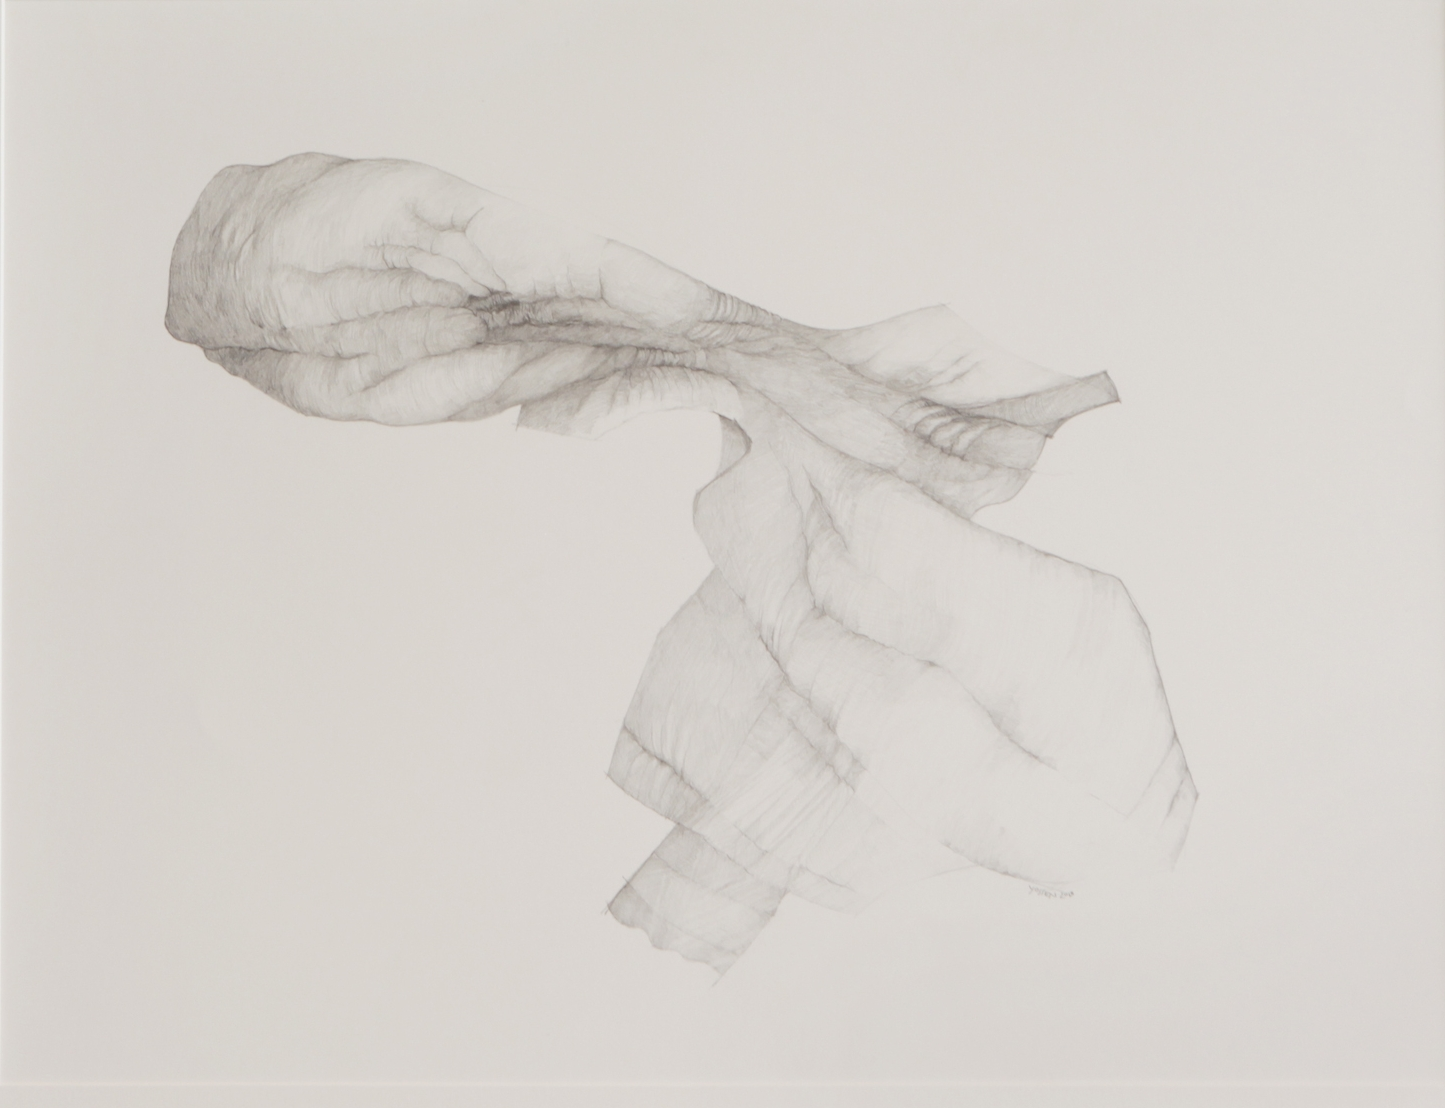 YOSSEN_big diaper #1- 36%22x29%22-graphite- 2013..jpg